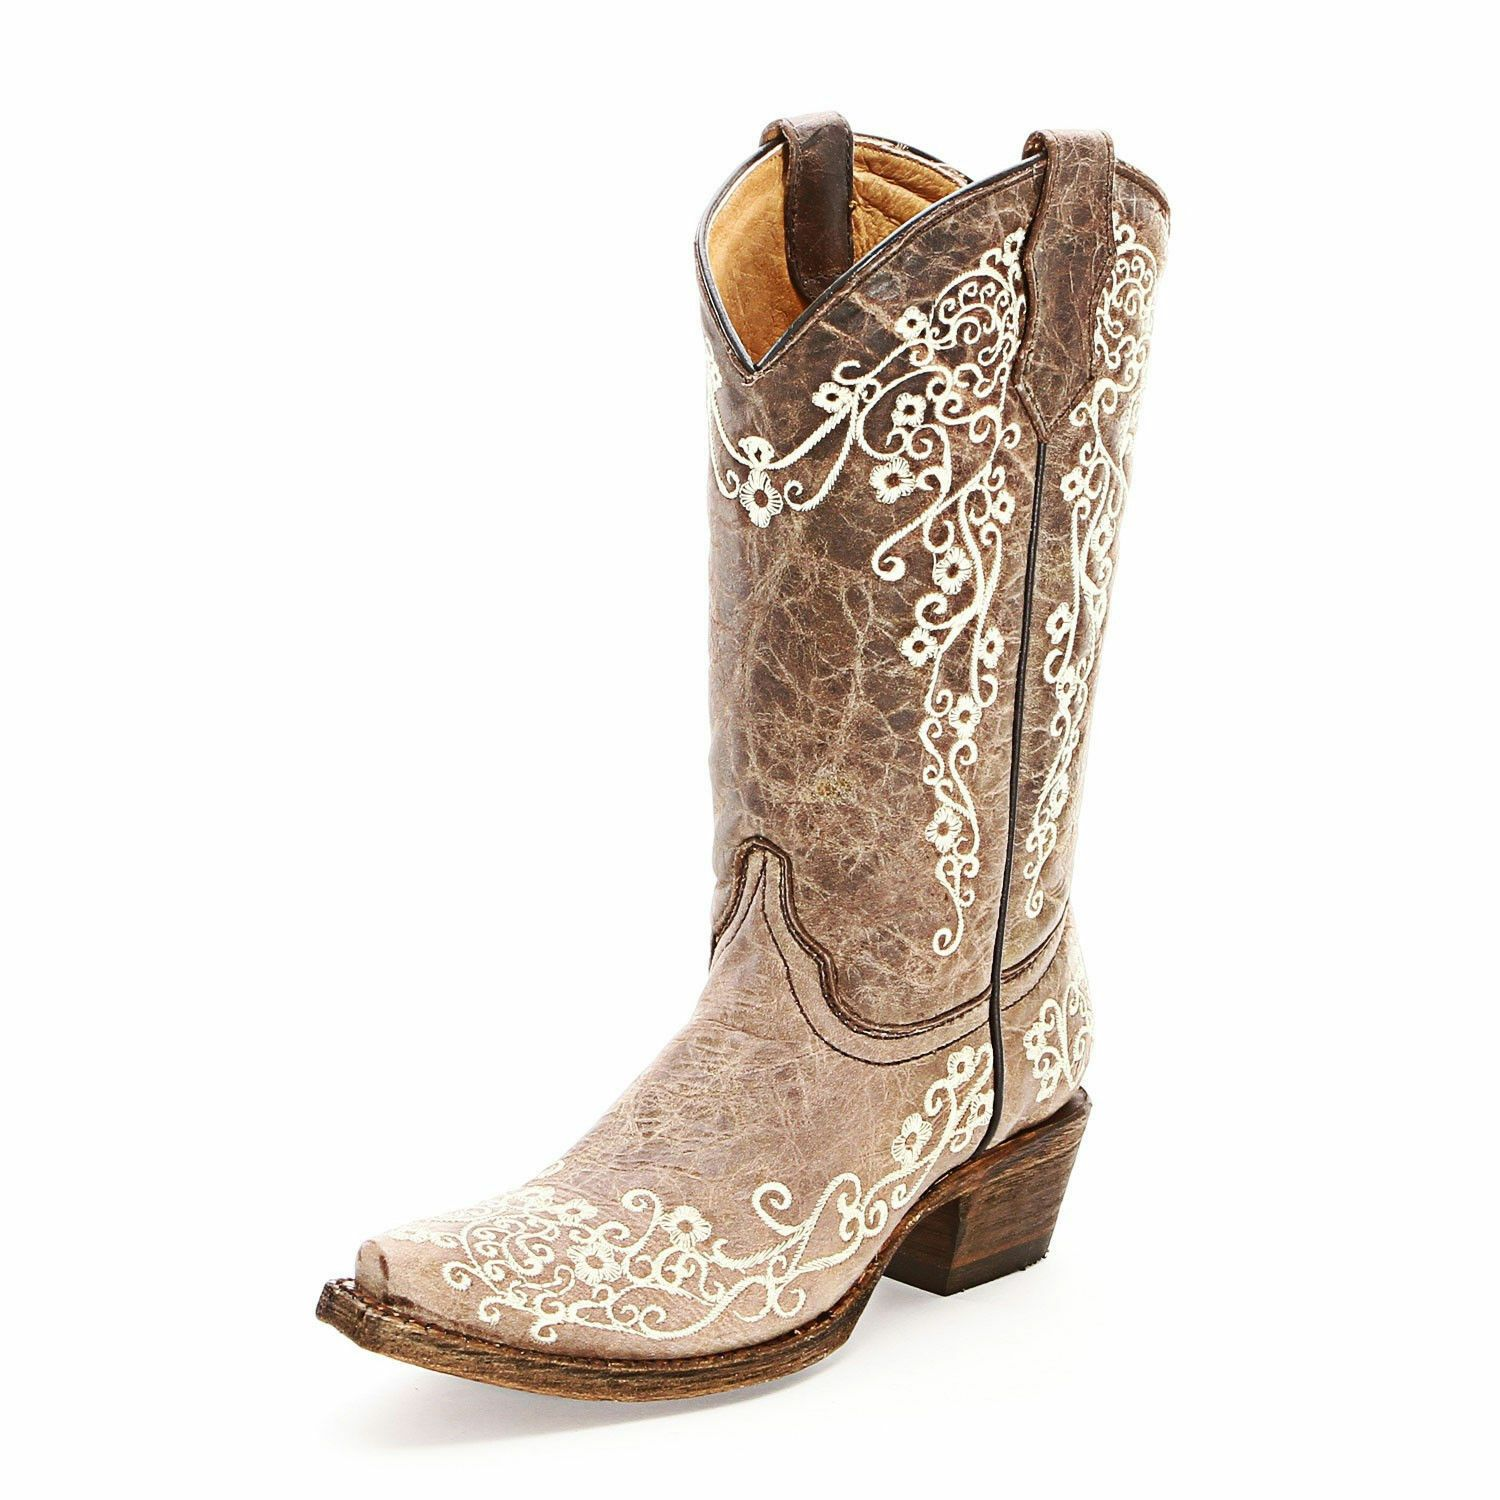 62064d1c240 KIDS YOUTH CORRAL COWGIRL BOOTS! NIB! A2773-FLORAL EMBROIDERED-FREE ...